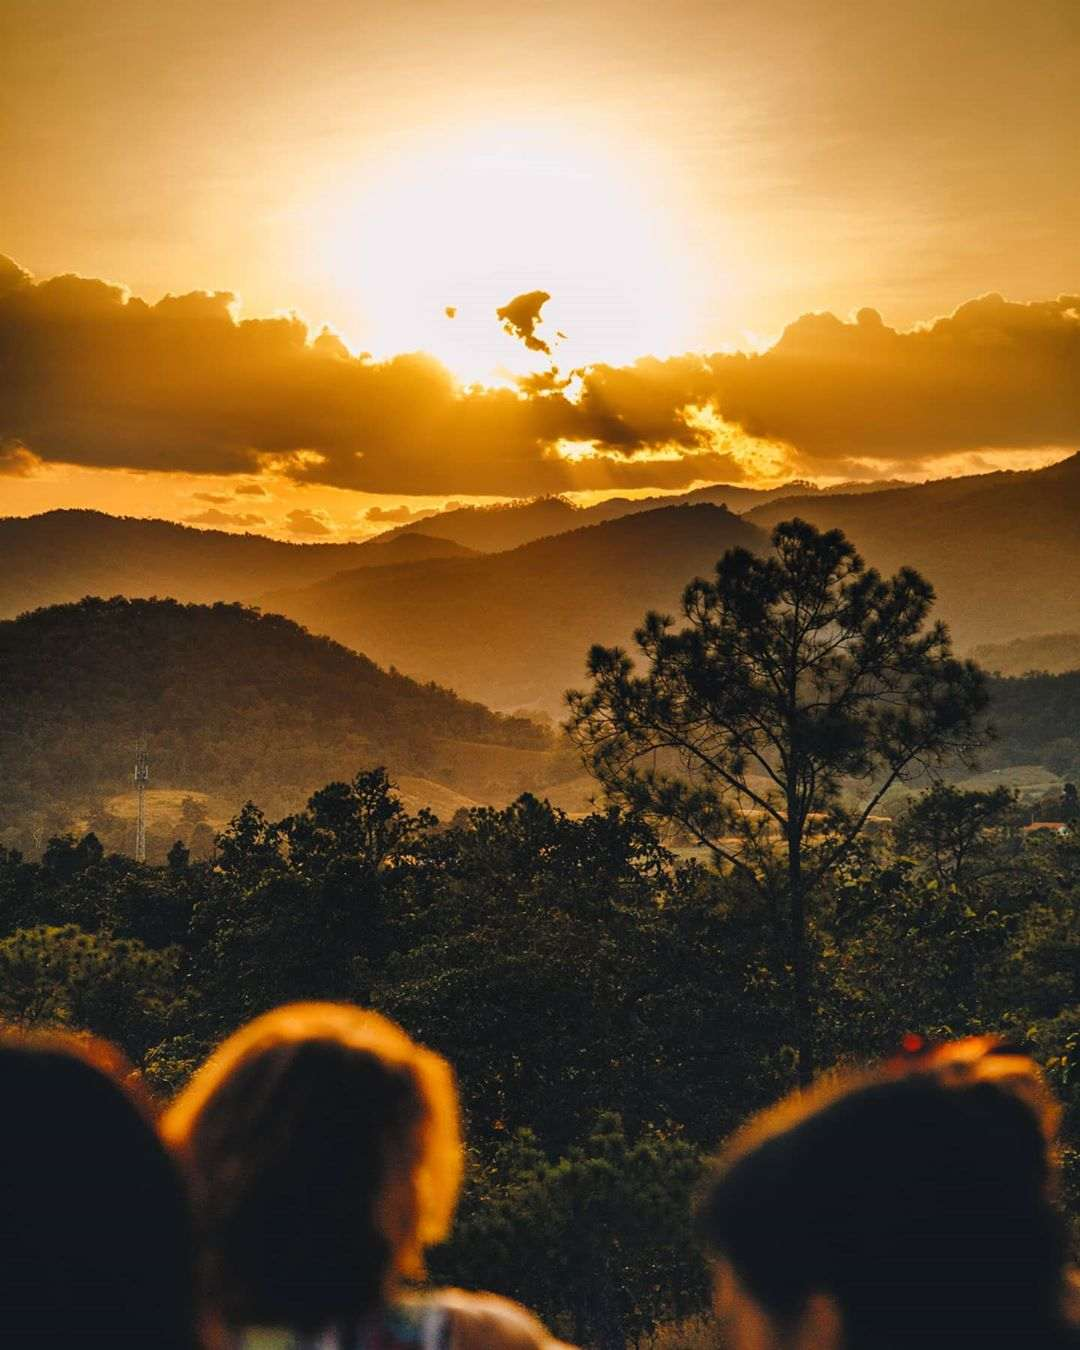 Seeing the sun go down with the hills of Pai in the background